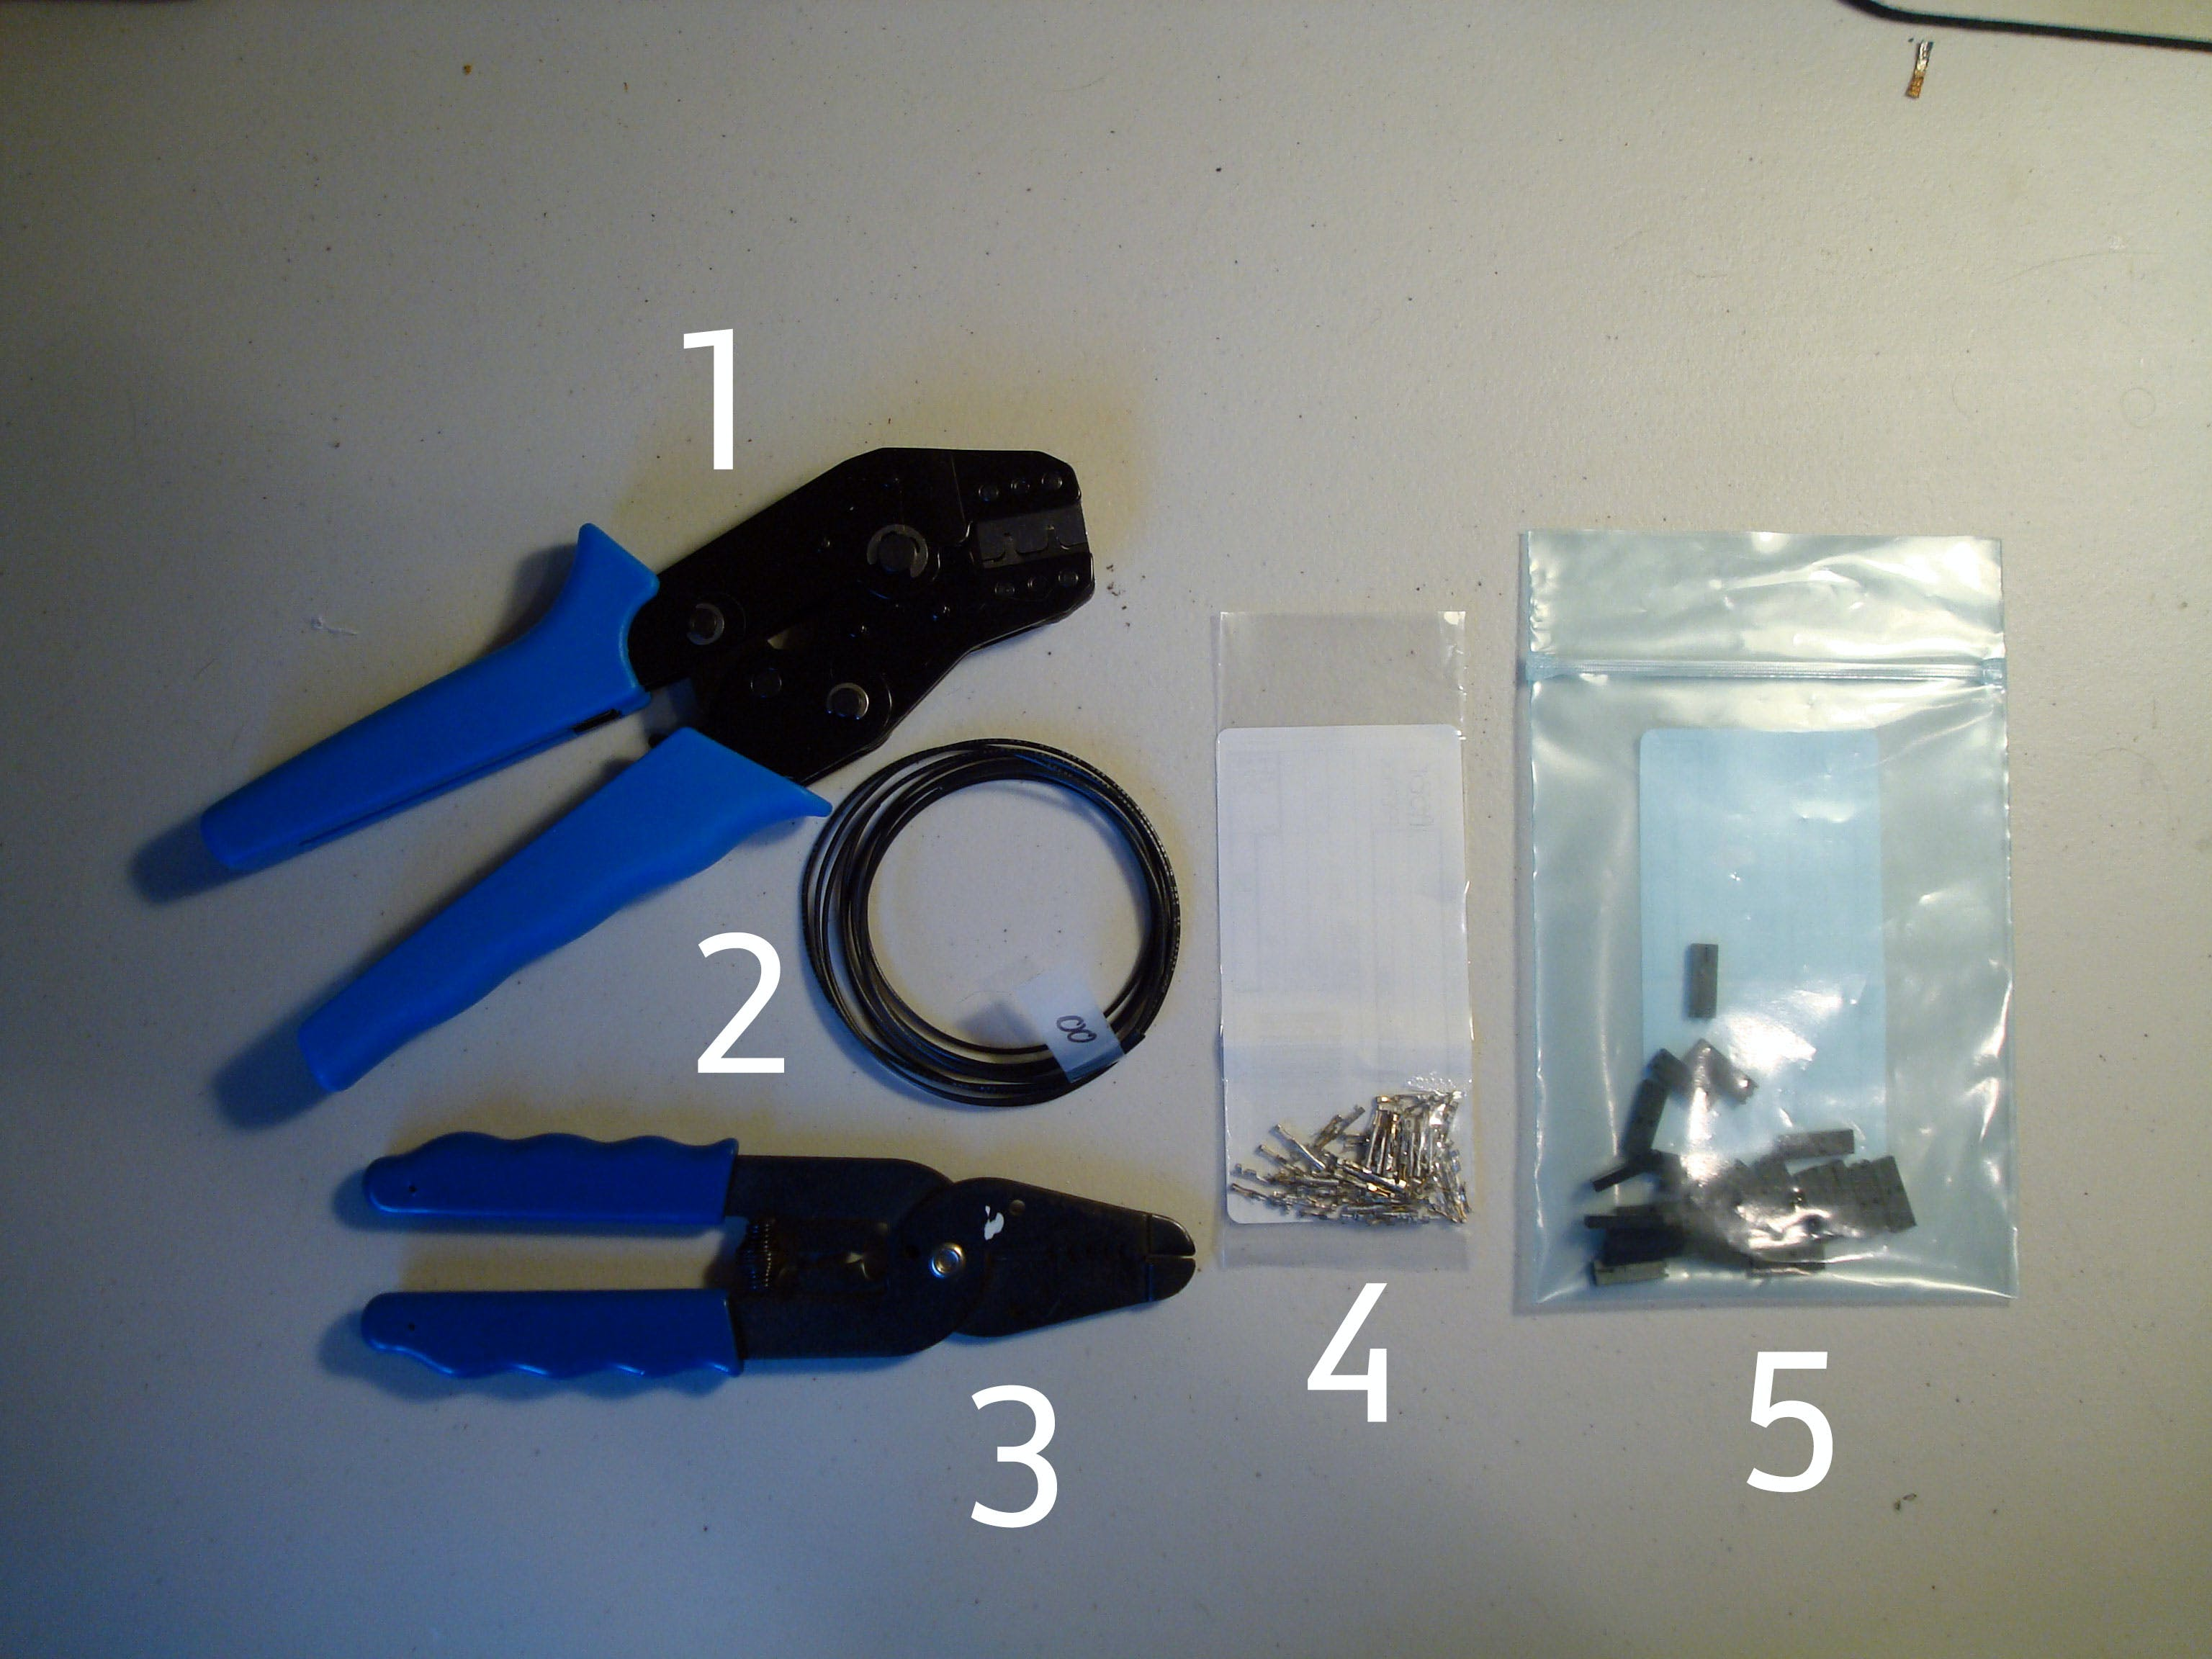 Counter-Clockwise from left. 1: Ratcheting hand crimper. 2: Our cut-wire lengths. 3: wire stripper. 4: The Molex SL female crimp terminals. 5: Molex SL 2 pin crimp housing.